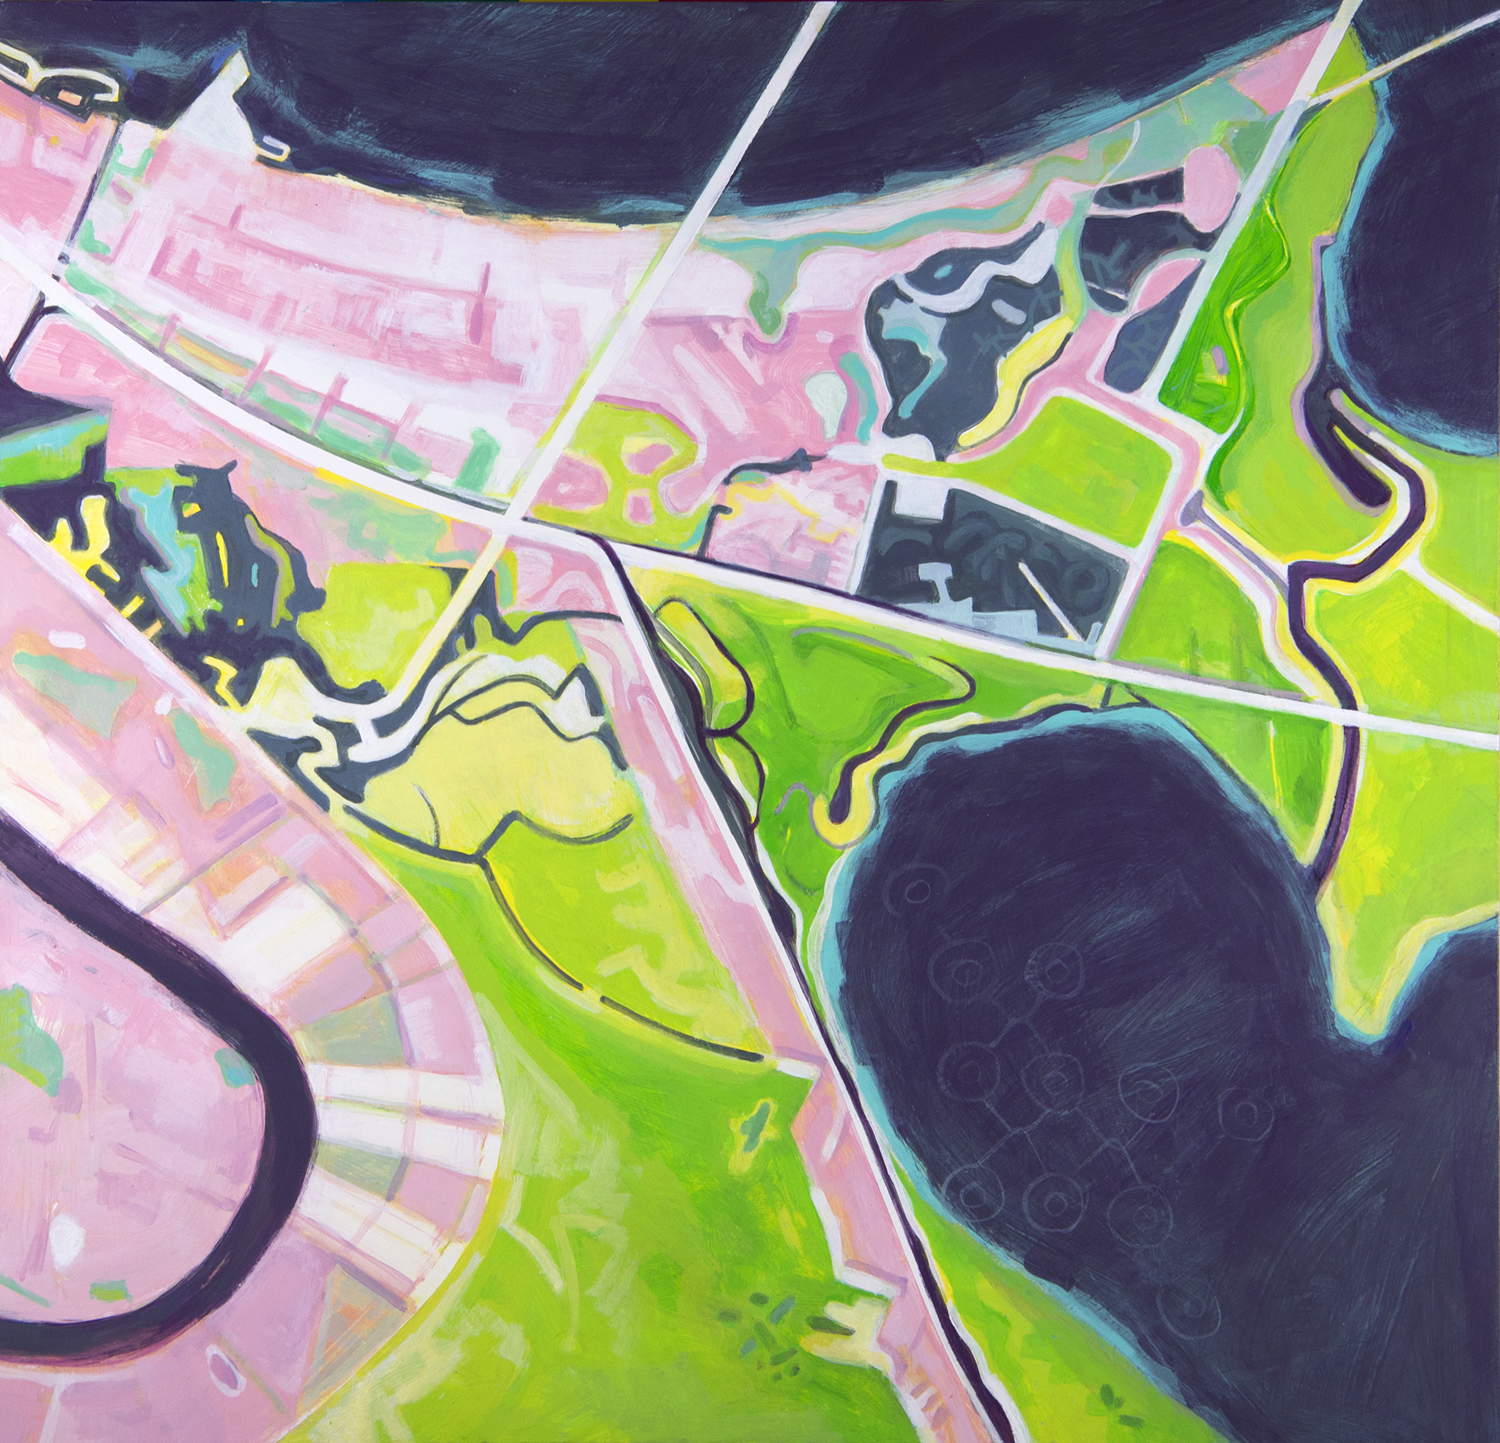 painting of new orleans satellite view, after hurricane katrina